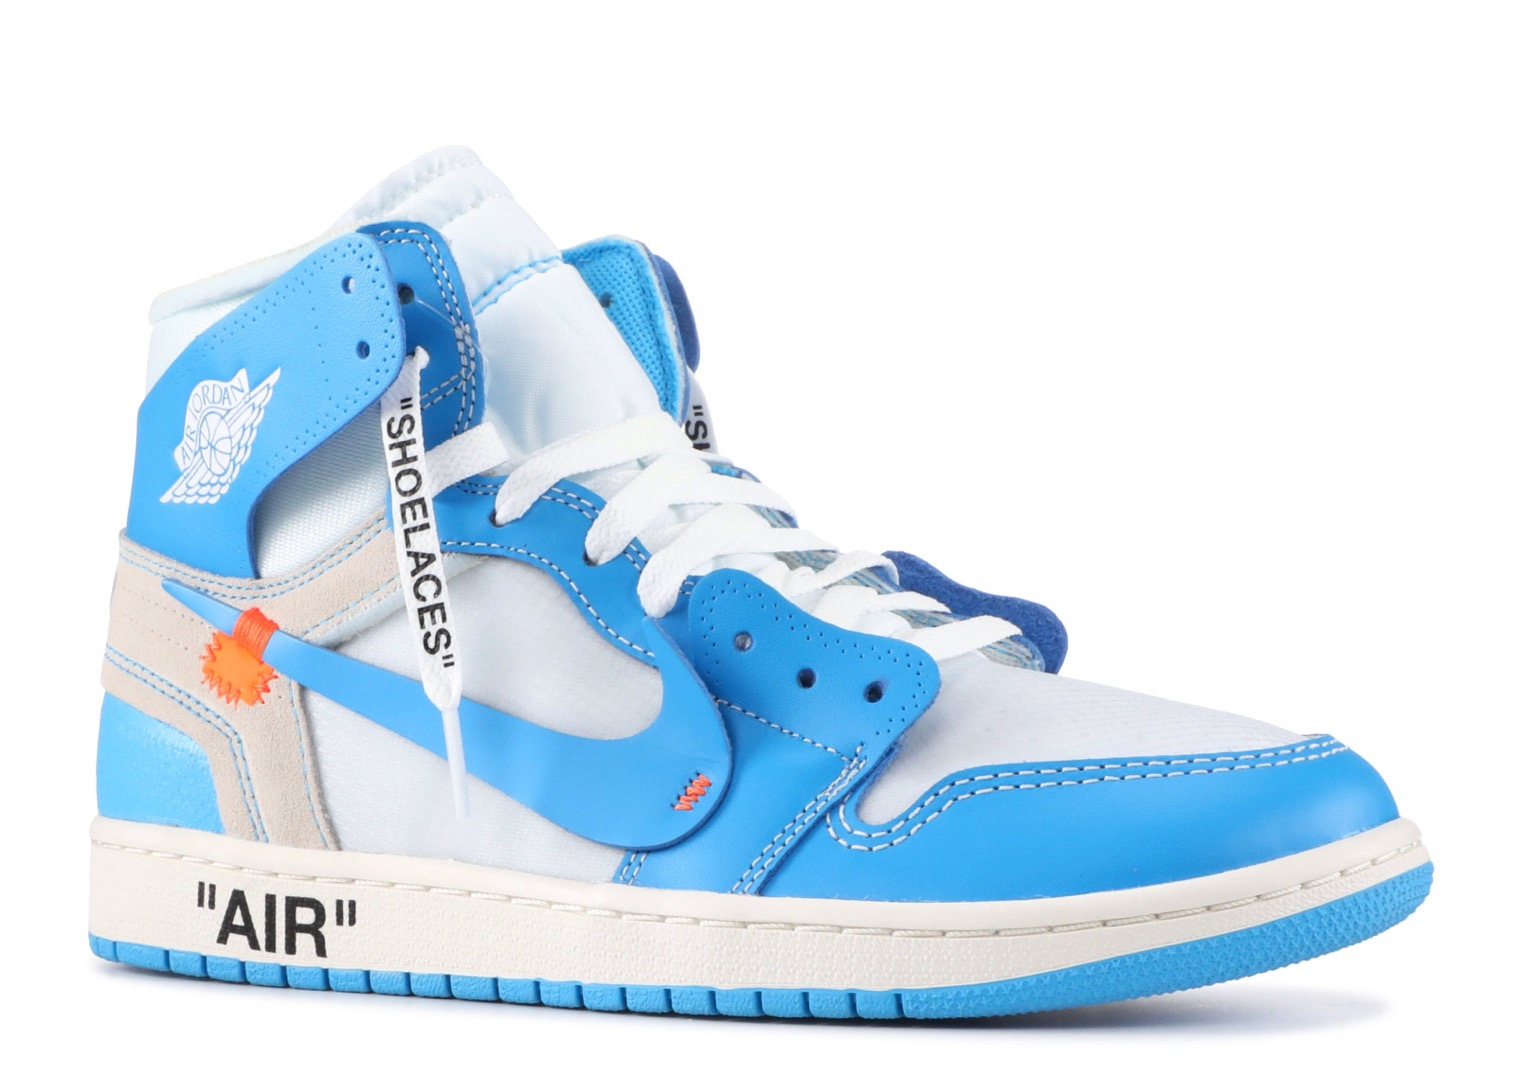 Air Jordan OFF WHITE NRG OFF